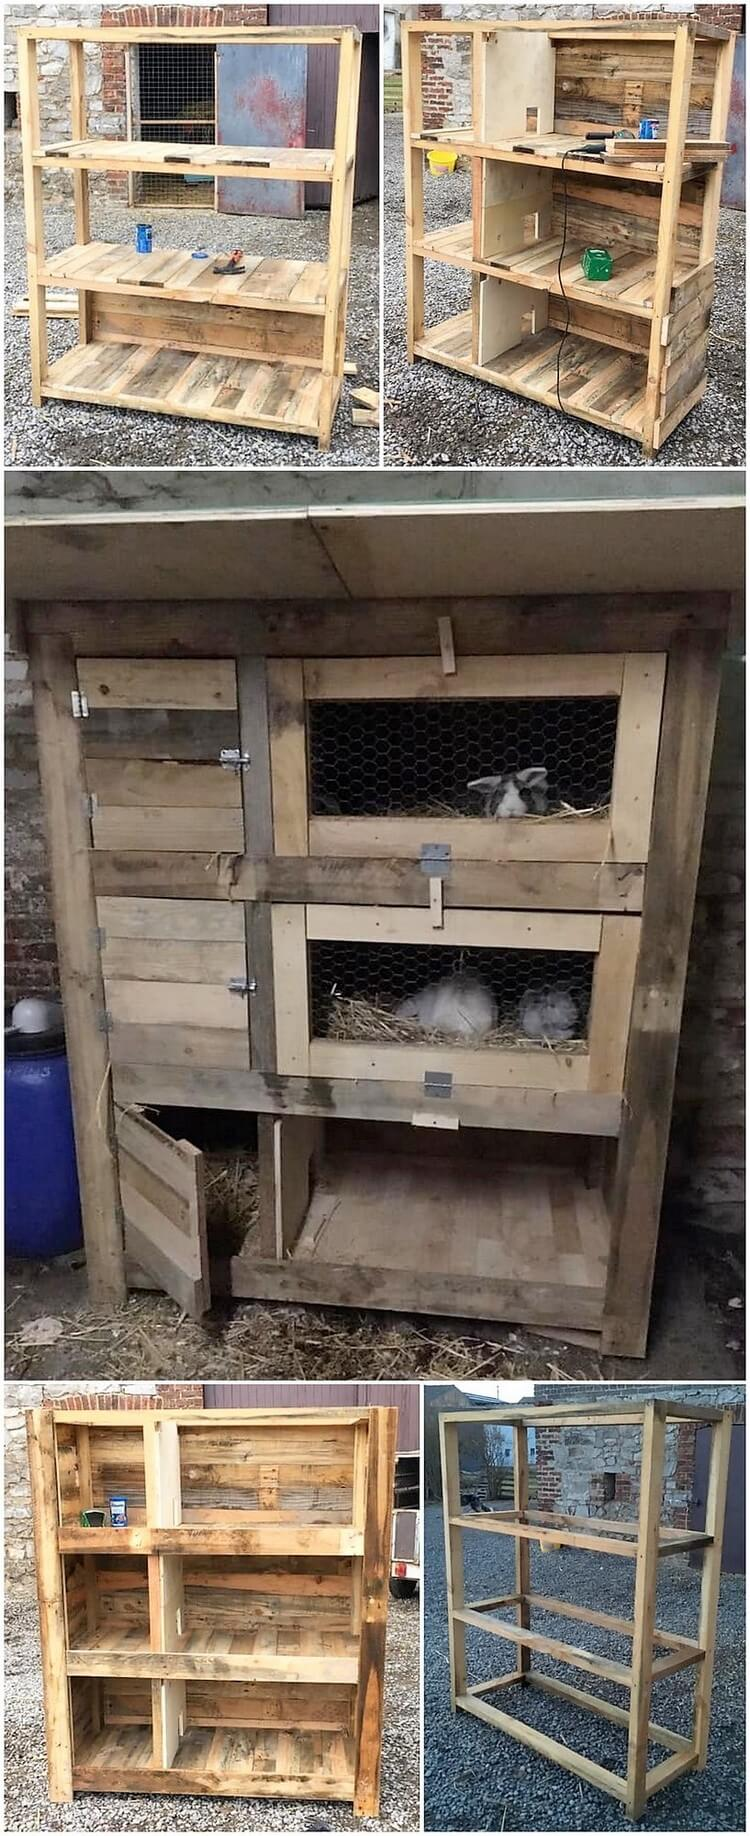 DIY Pallet Rabbit Hutch